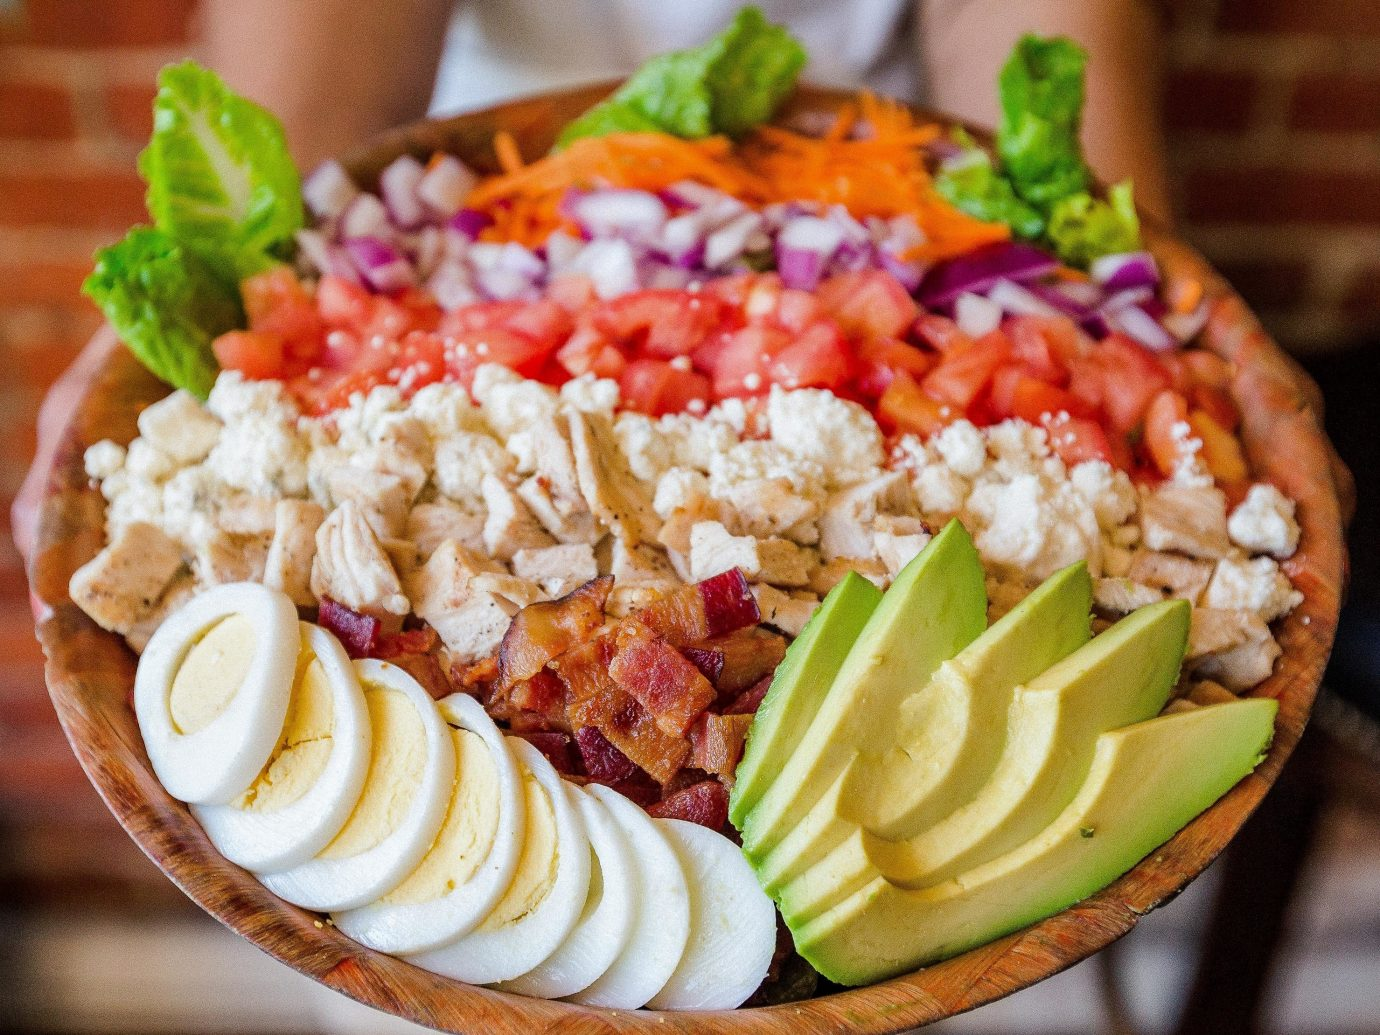 Trip Ideas food dish plate cuisine salad vegetarian food vegetable appetizer recipe side dish waldorf salad close several fresh